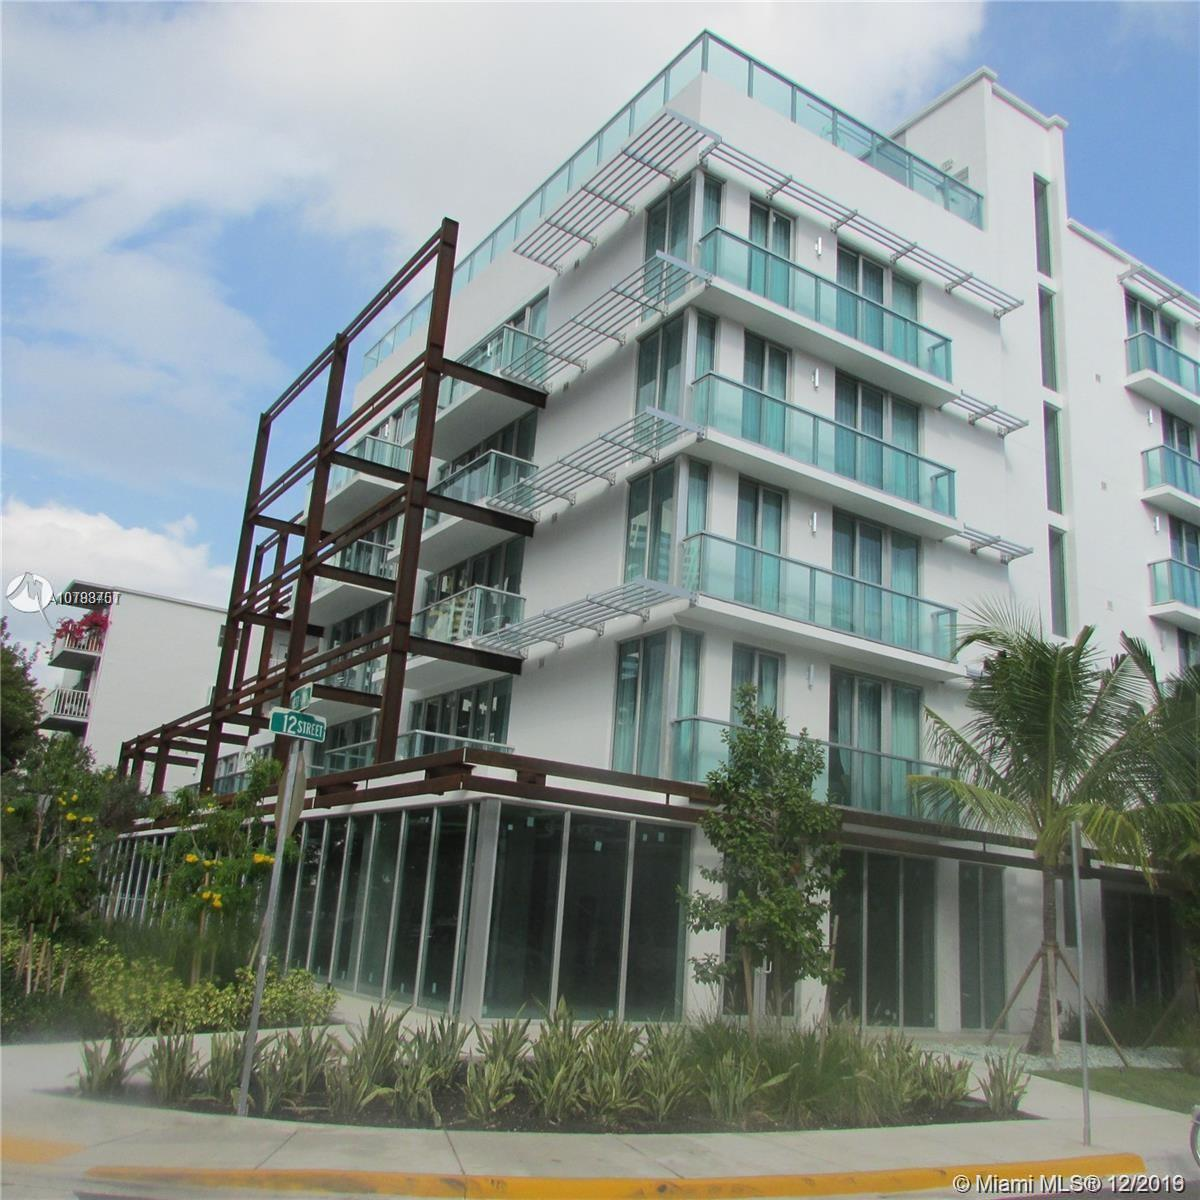 Trendy South Beach Condo Hotel! Offered fully furnished. For the sophisticated buyer that appreciates a full-service condo with pool! Walking distance to the best South Beach has to offer.